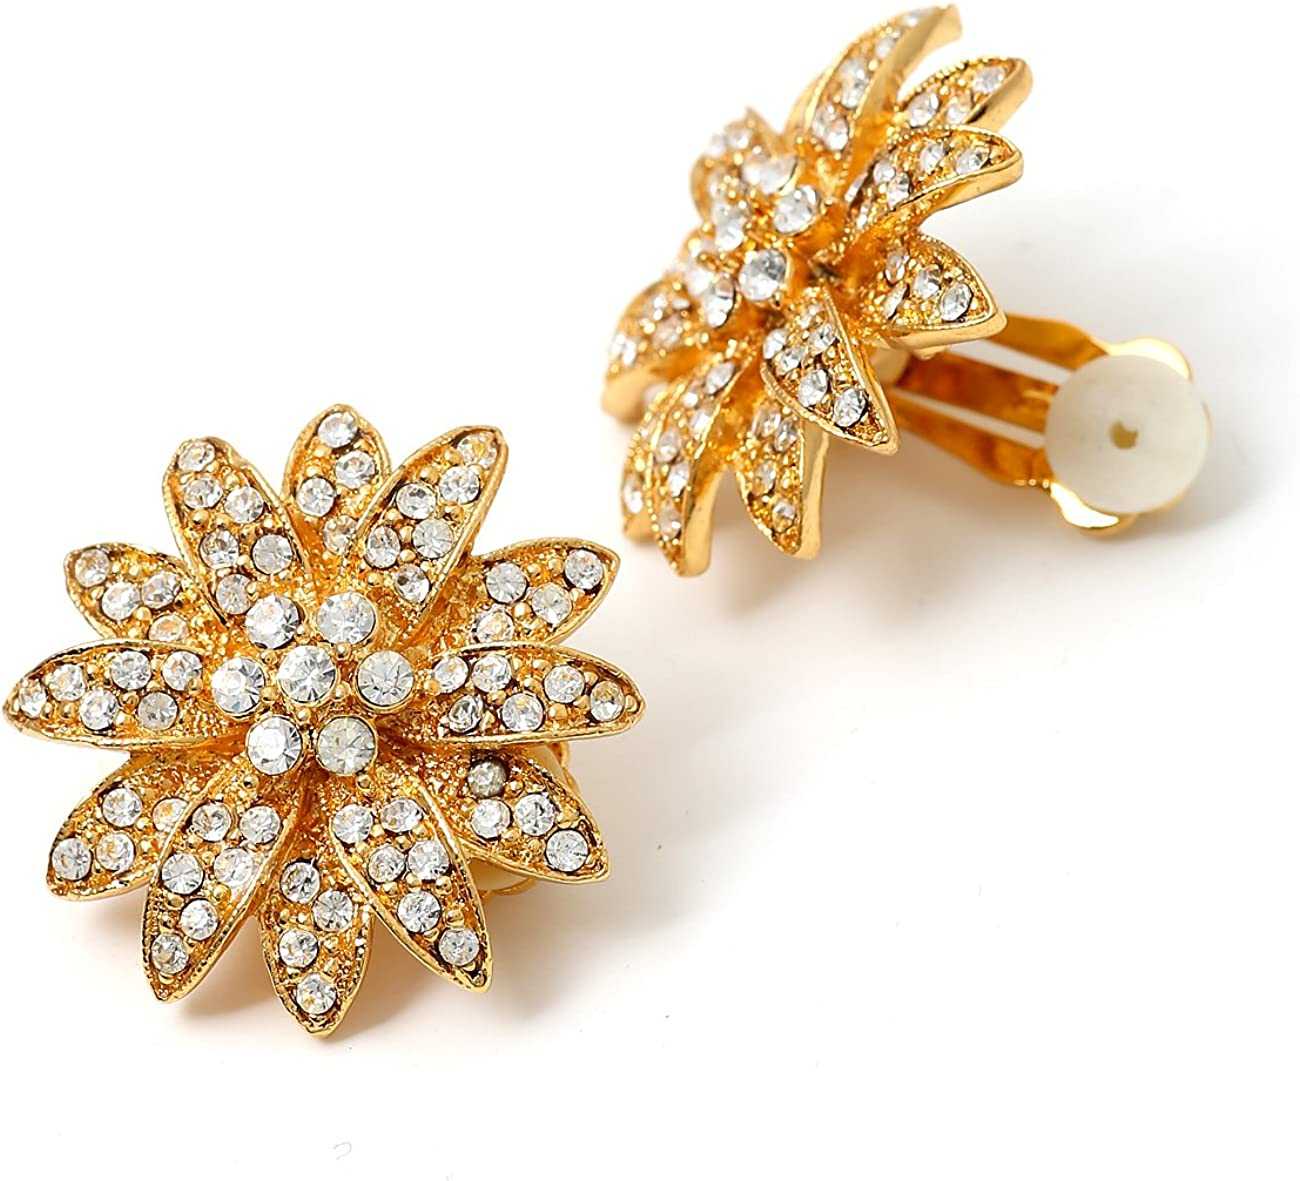 Ranking integrated 1st place Gold Crystal Rhinestone in Flower Earrings Clip Shape OFFicial